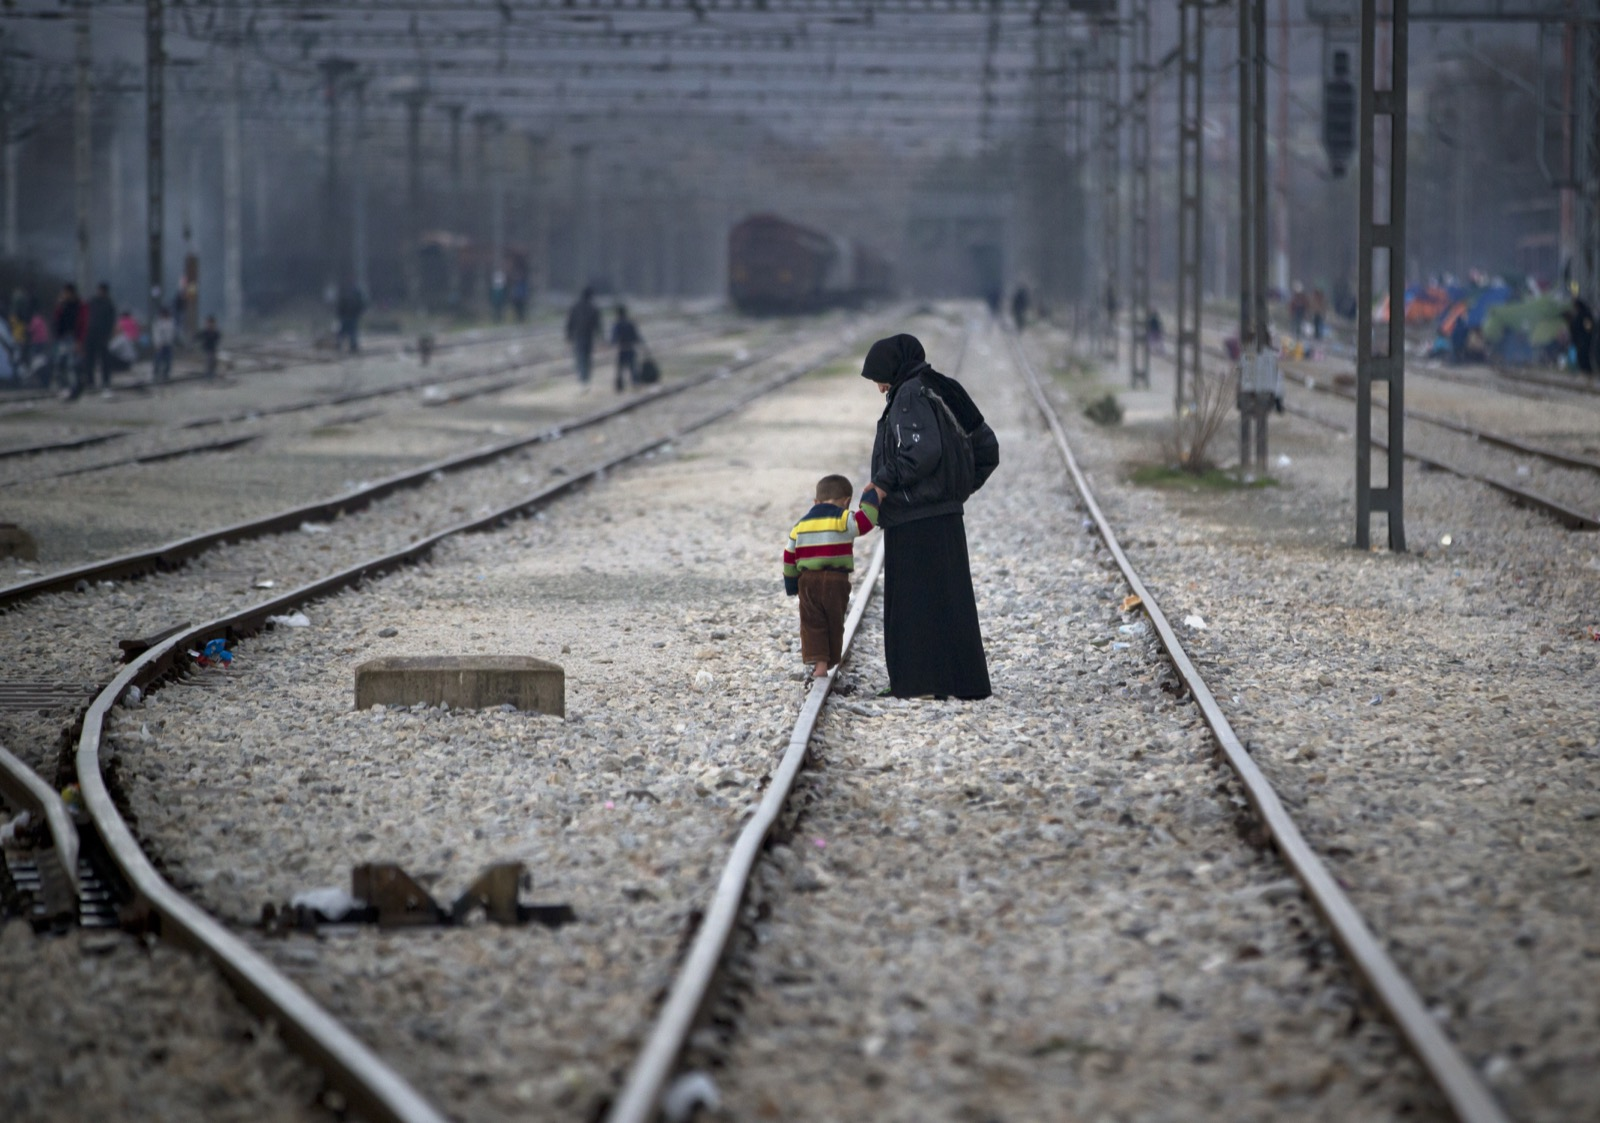 A woman holds the hand of a toddler walking on a railway track at the northern Greek border station of Idomeni. AP Photo/Vadim Ghirda